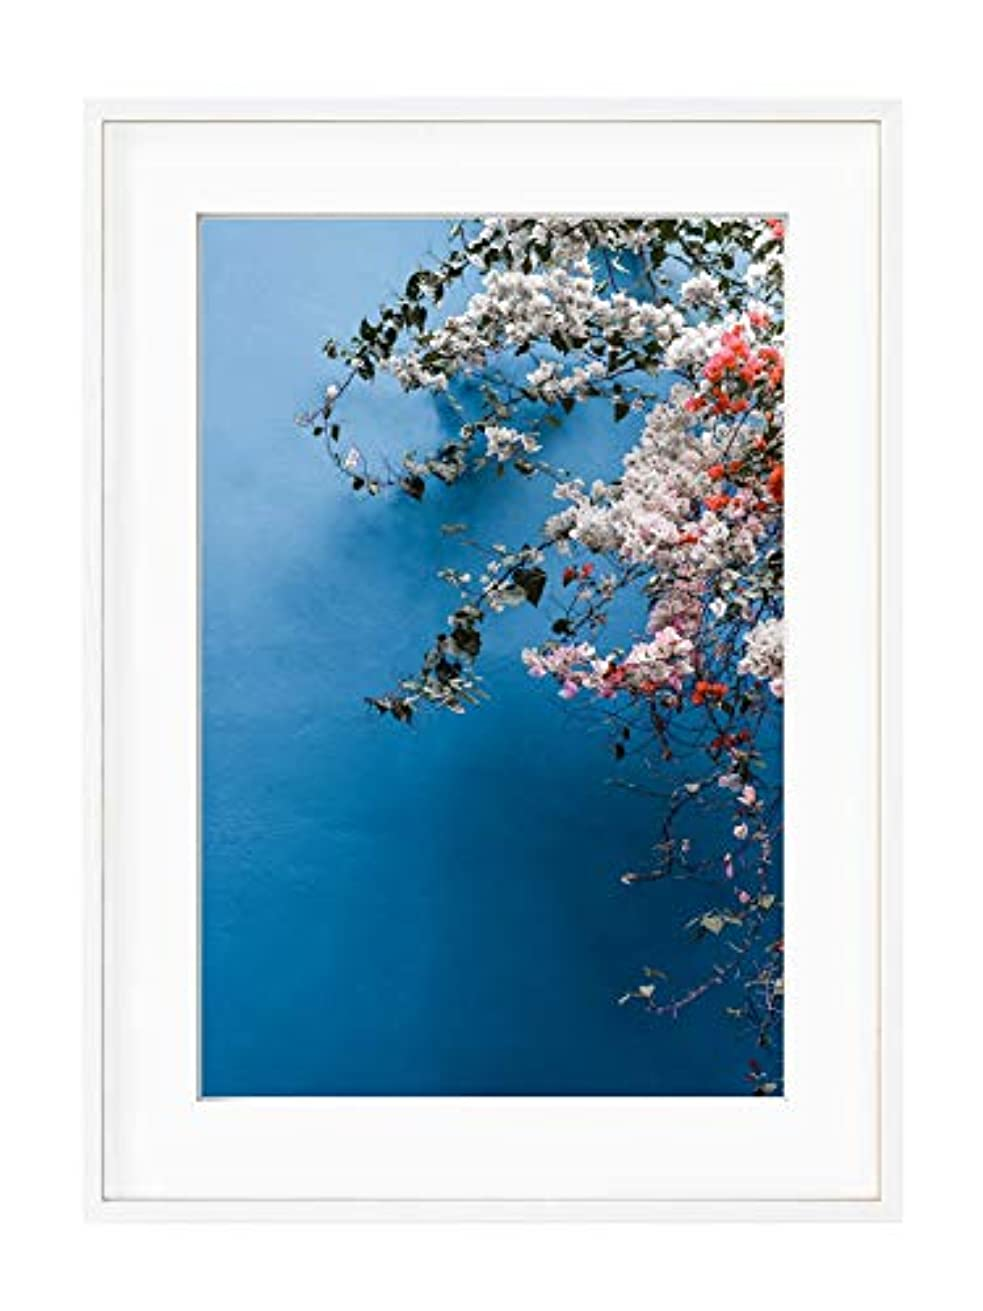 Bougainvillea 1 White Lacquer Wooden Frame with Mount, Multicolored, 40x50